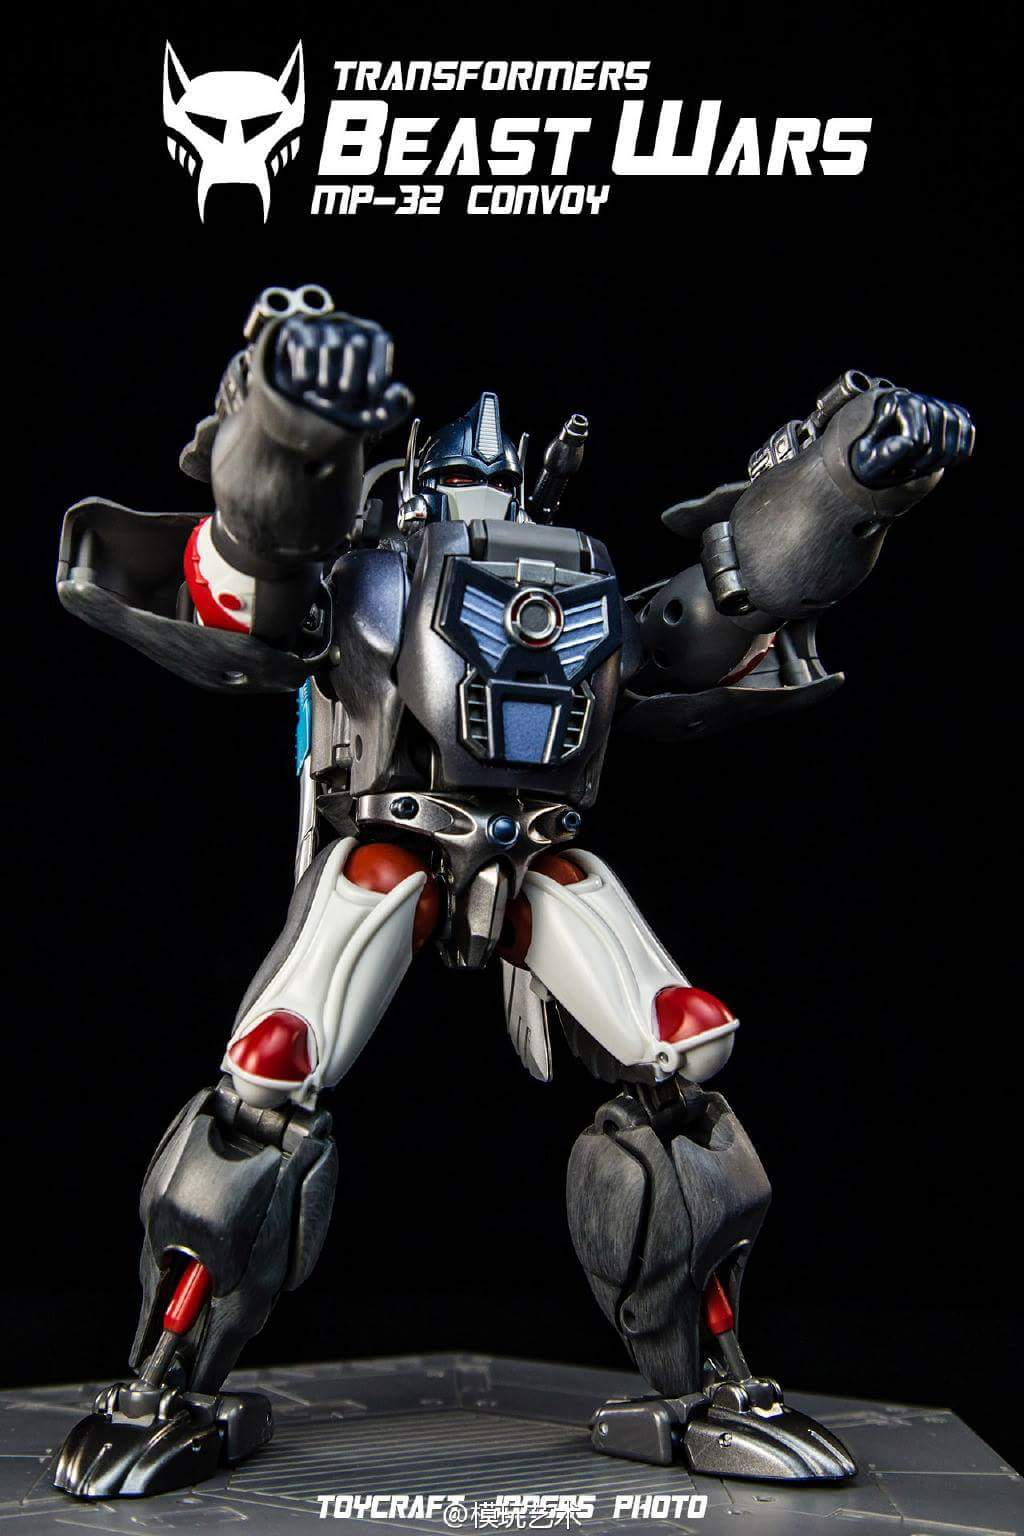 [Masterpiece] MP-32, MP-38 Optimus Primal et MP-38+ Burning Convoy (Beast Wars) - Page 3 XIb9o6Nf